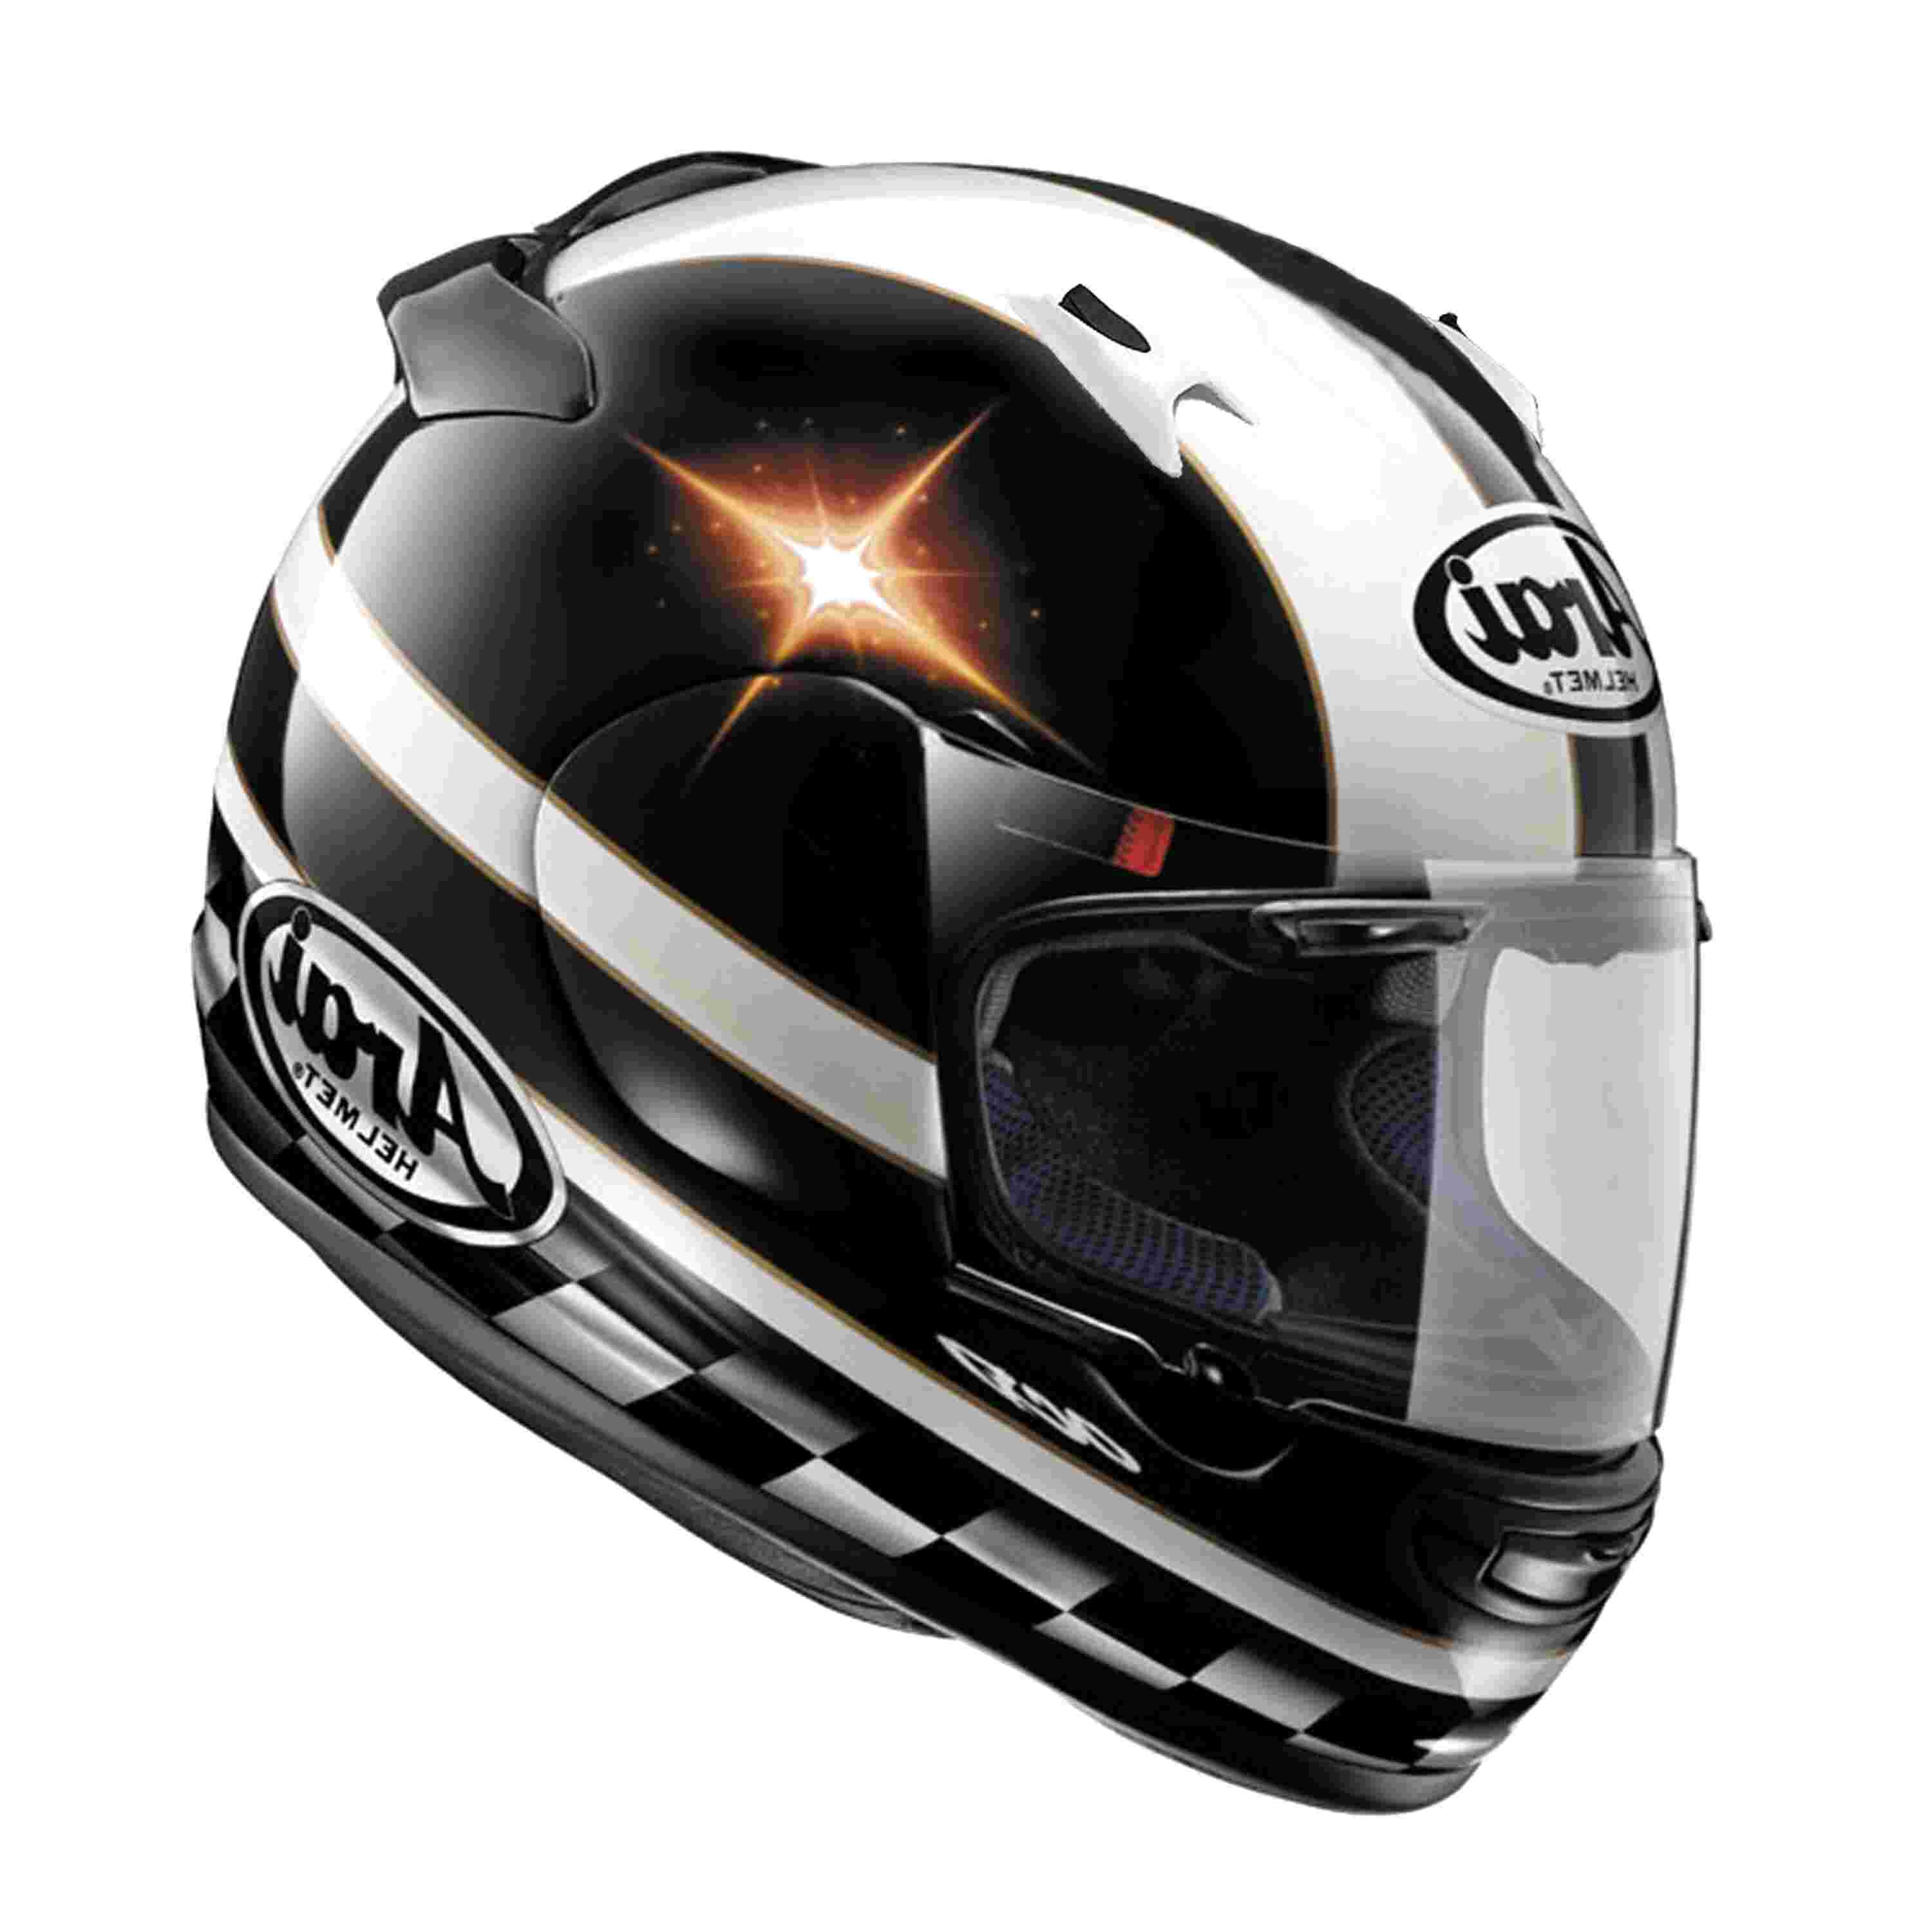 arai side pods for sale